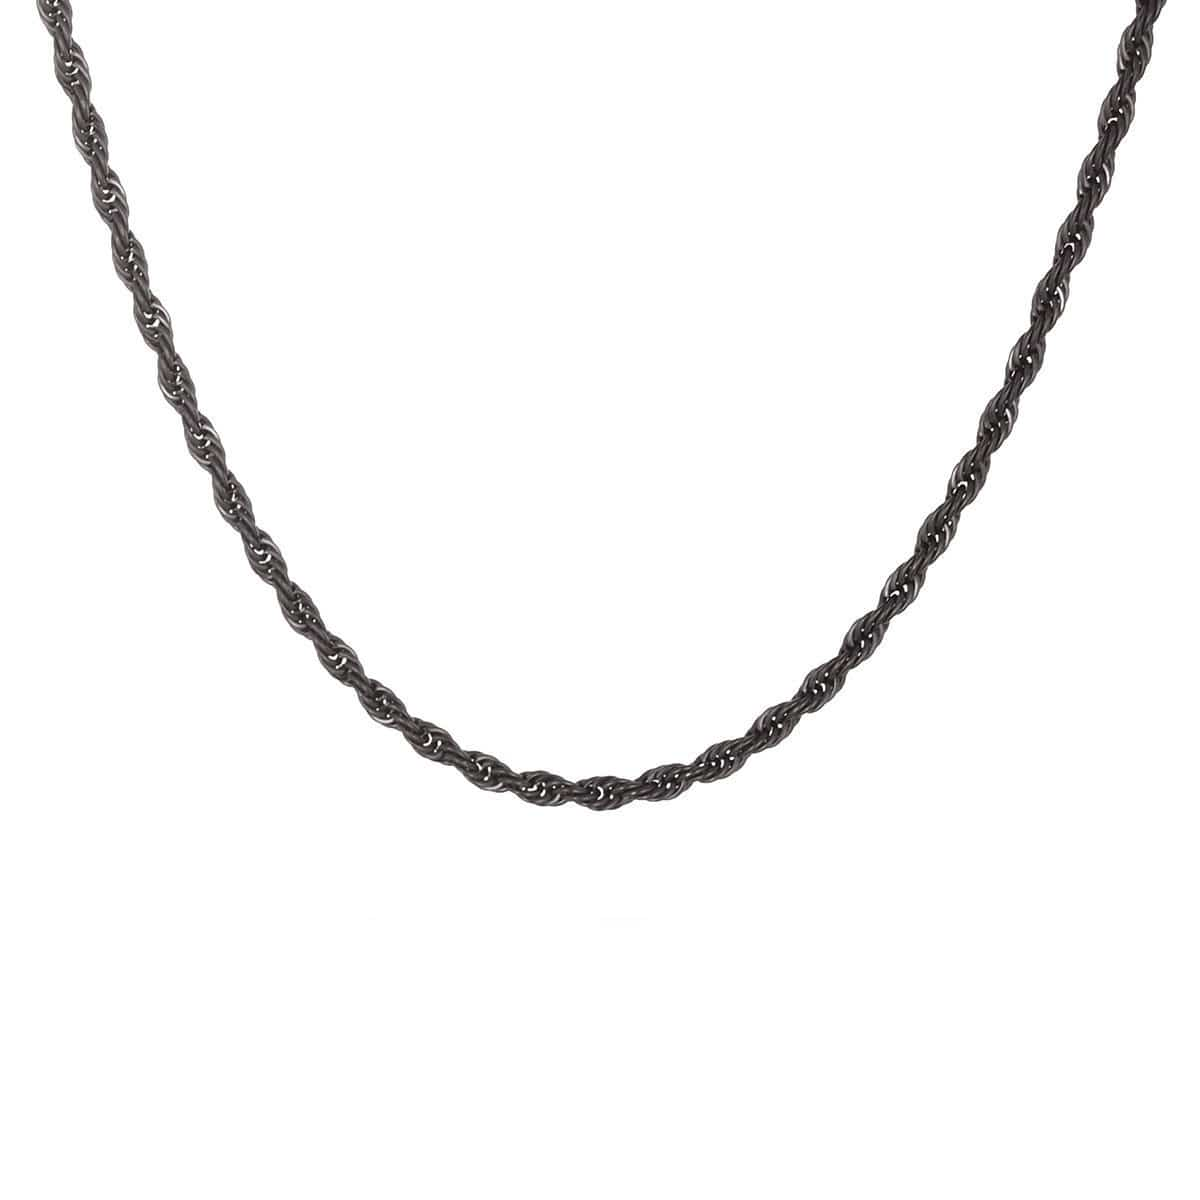 Black Stainless Steel Polished 3mm Rope Chain